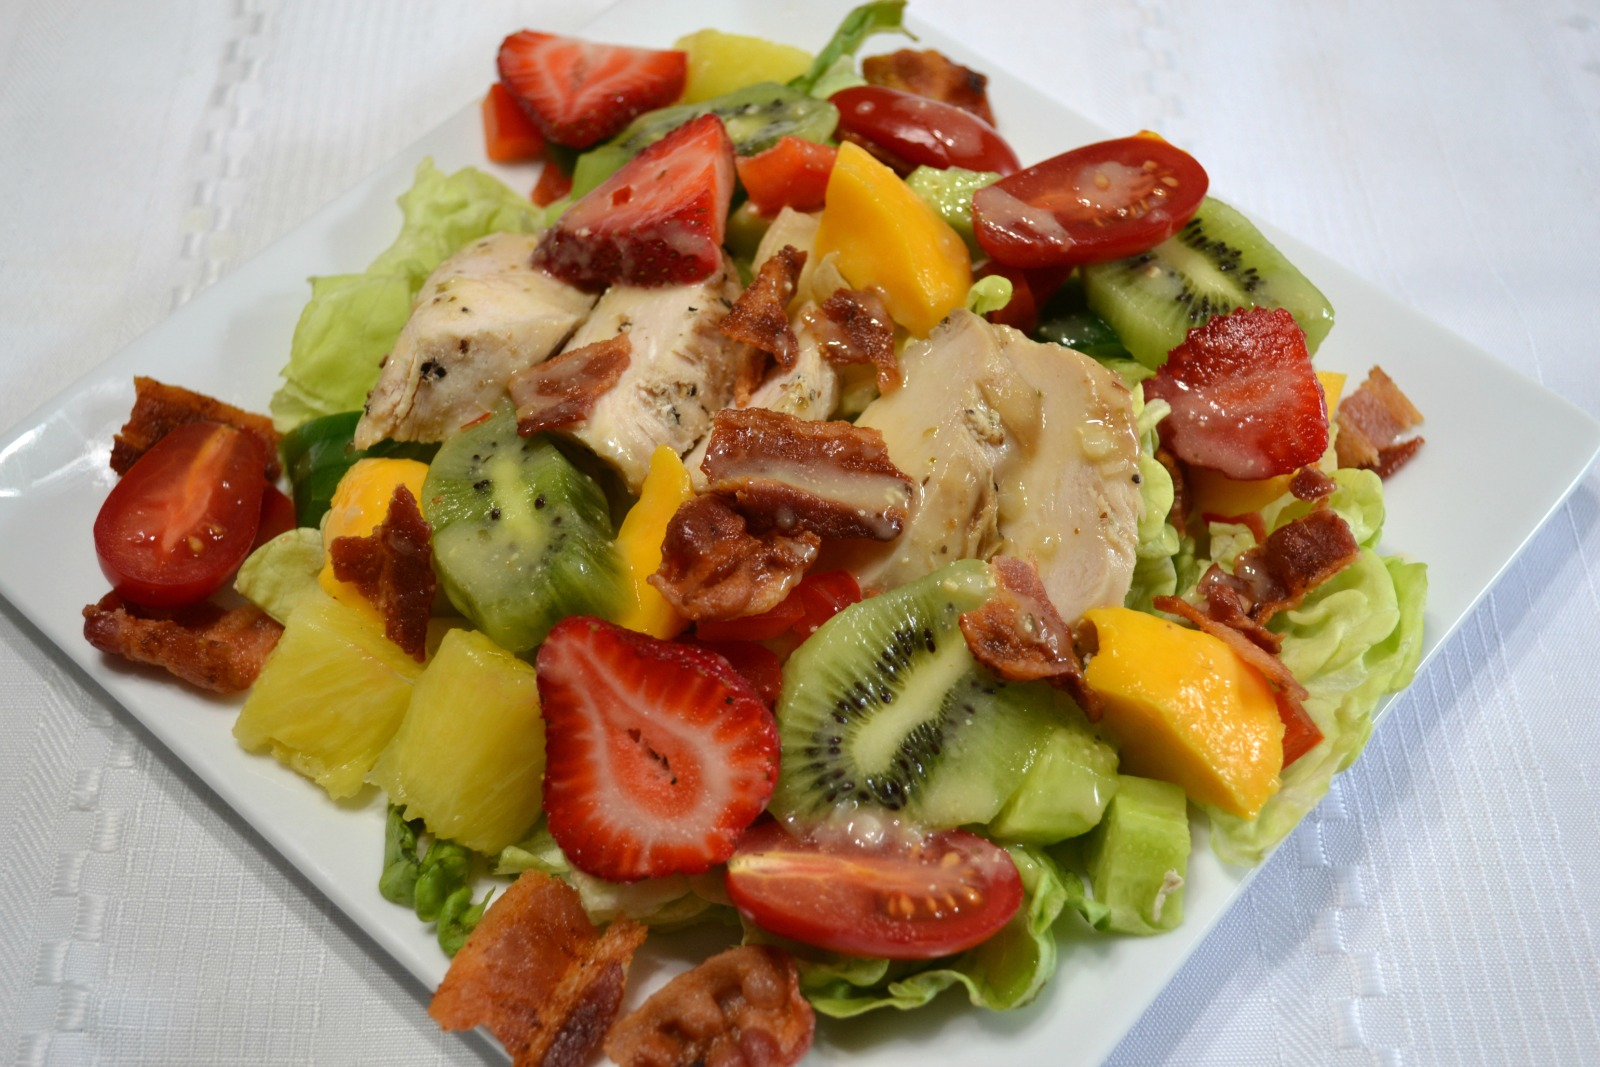 A colorful, light salad that tastes so refreshing after a heavy Thanksgiving dinner. Great way to use leftover turkey.thanksgiving, leftovers, cobb salad